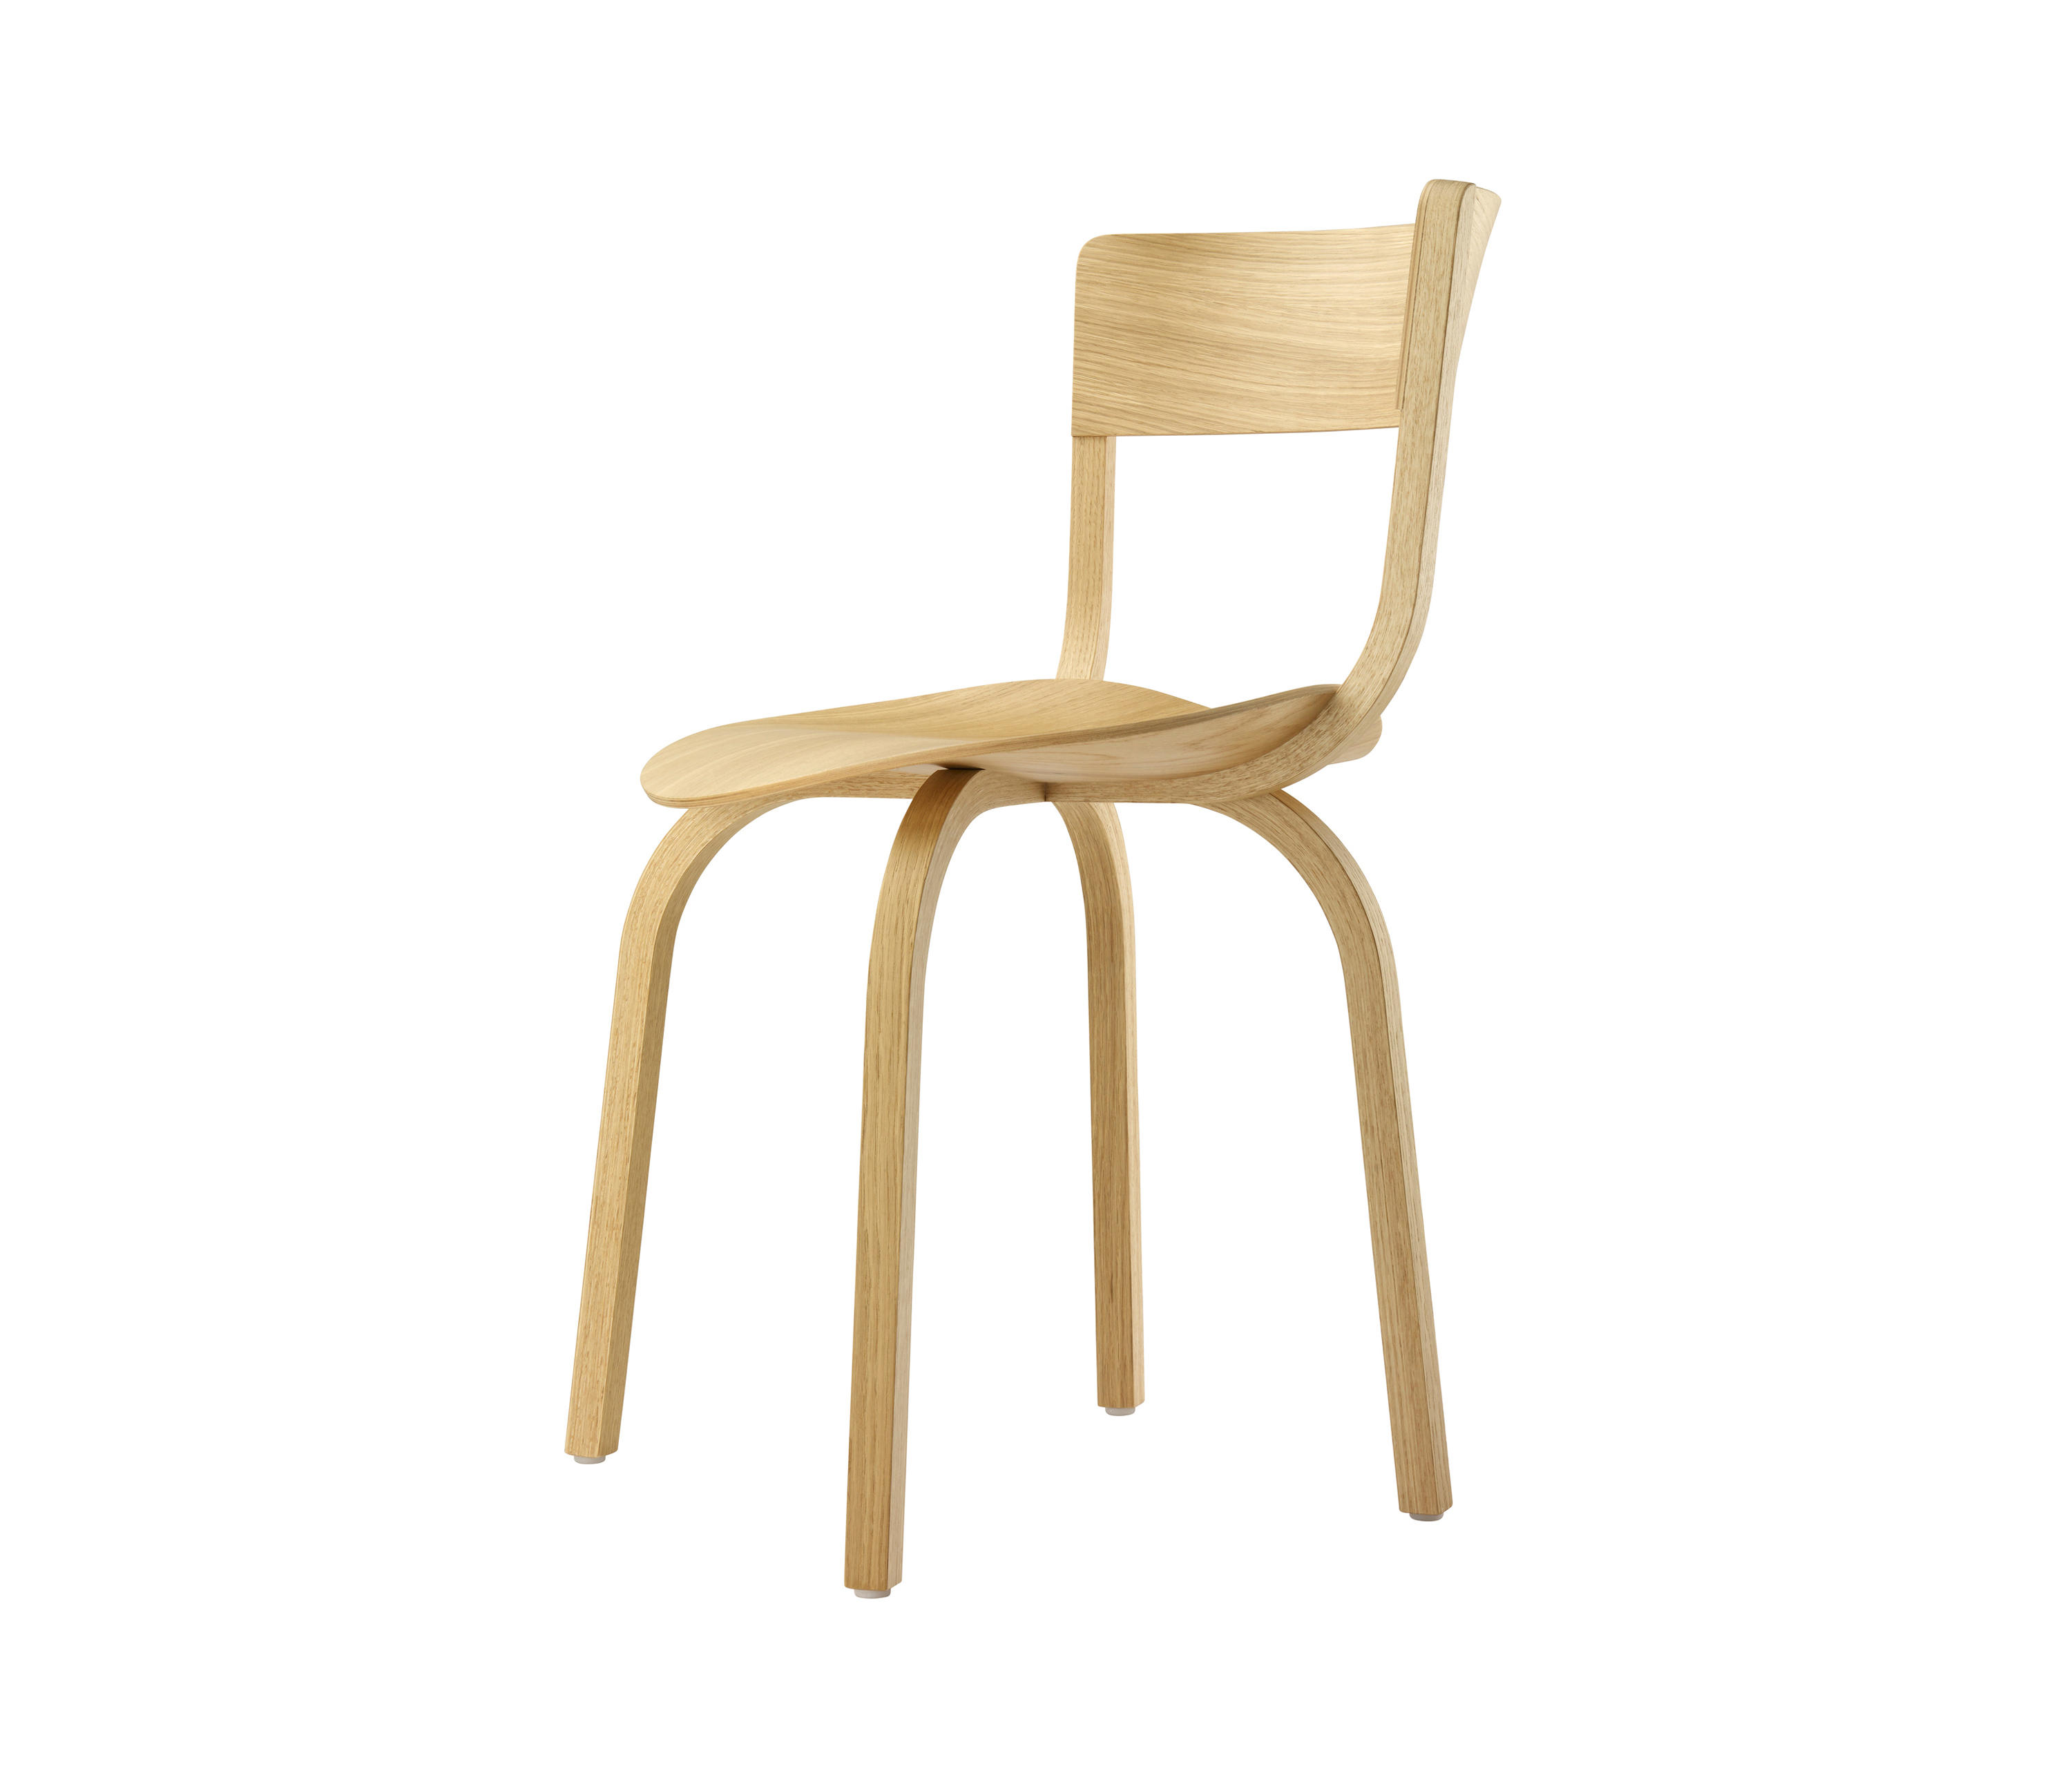 Thonet Jobs 404 Chairs From Thonet Architonic